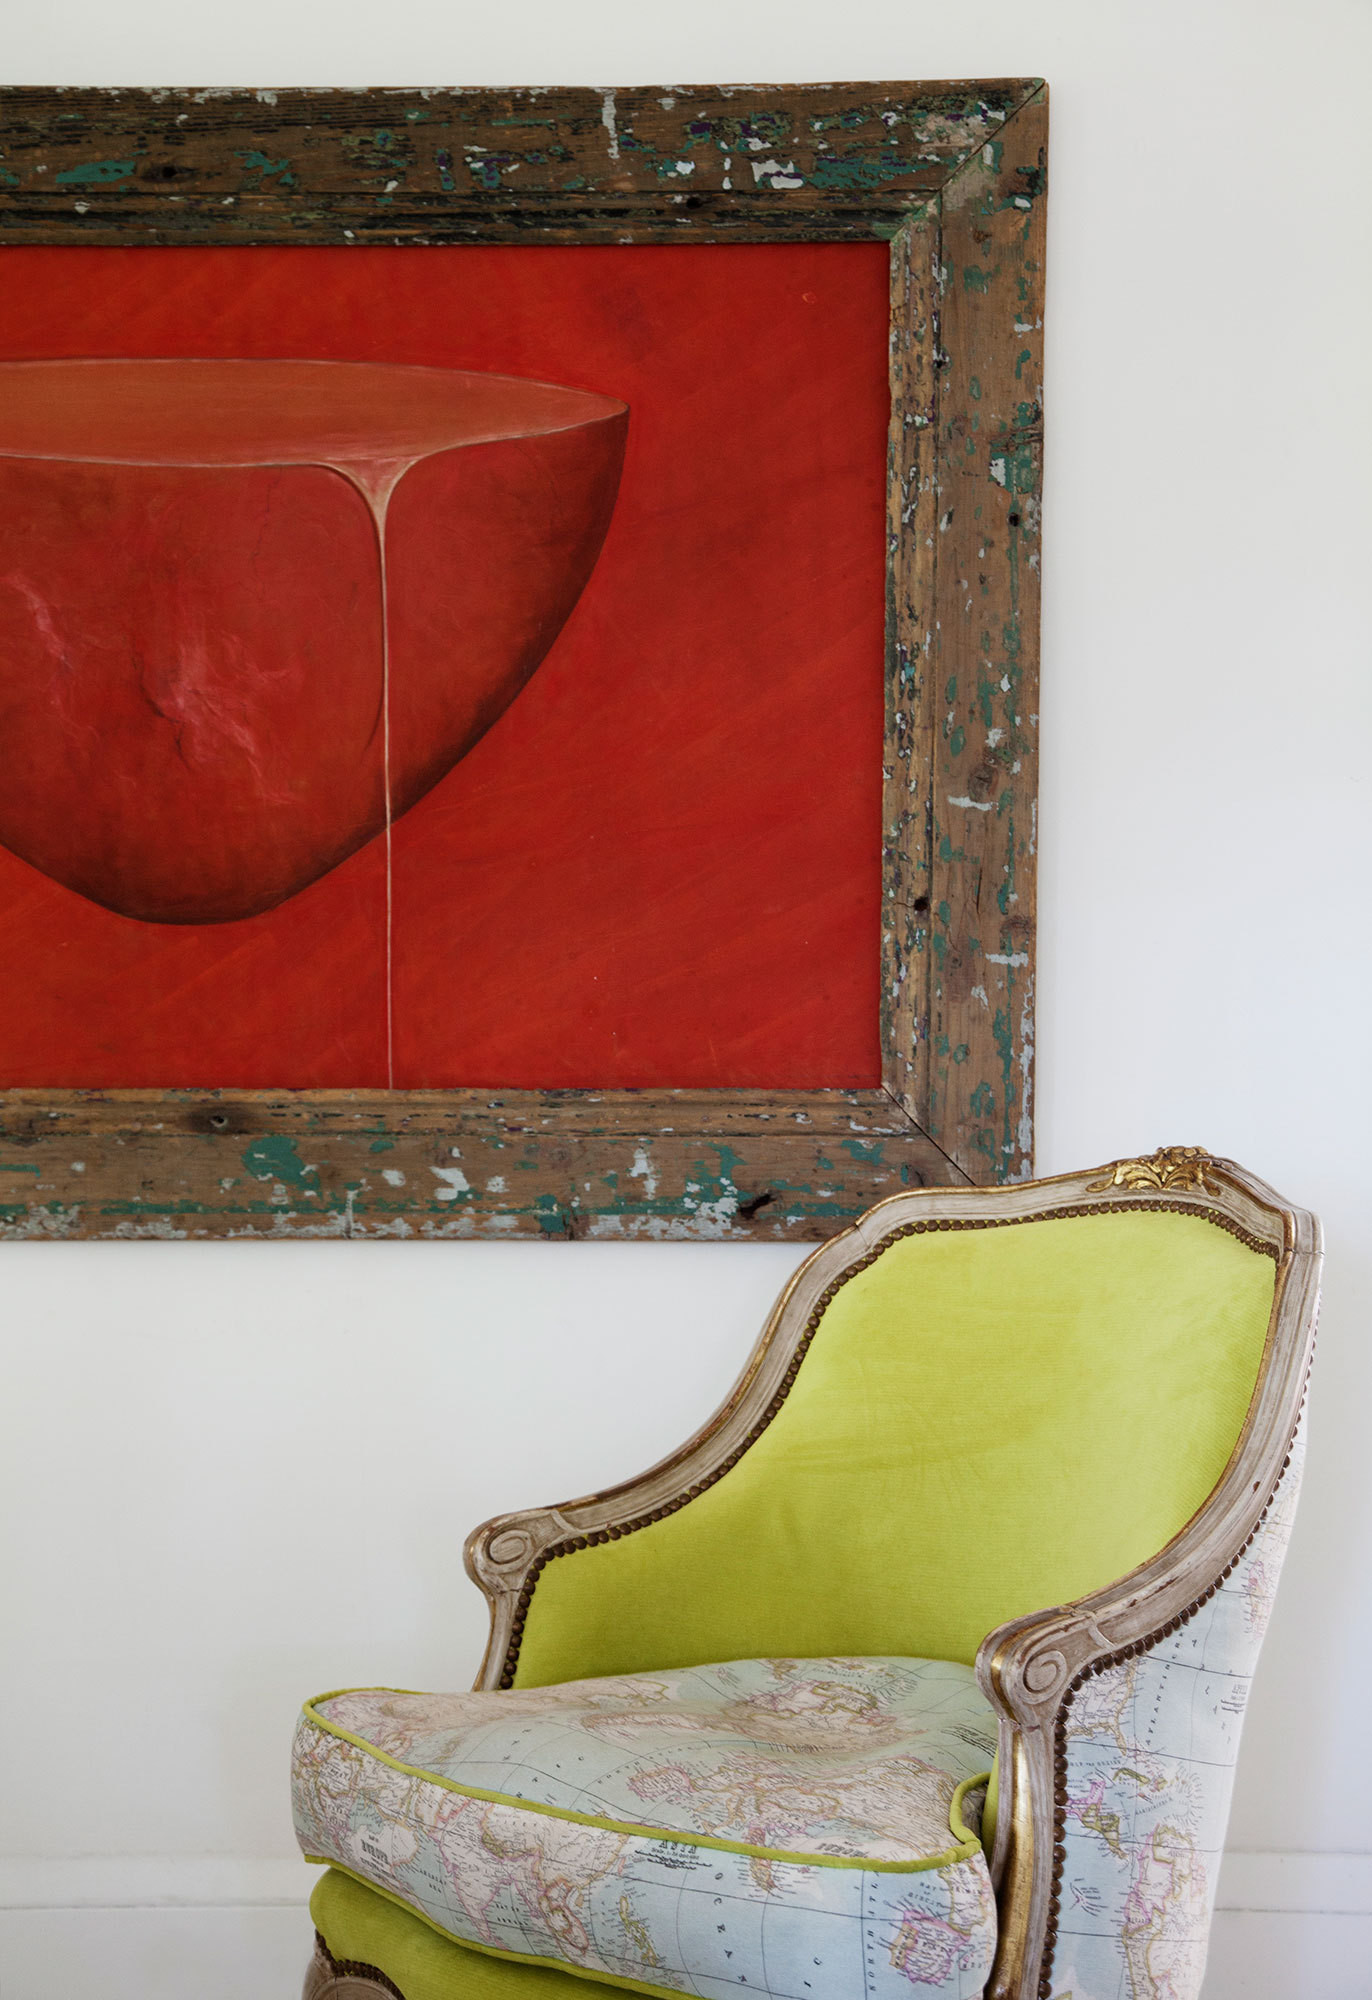 An antique chair reupholstered in map-printed fabric and acid-green velvet looks even more compelling next to a deep-red painting.